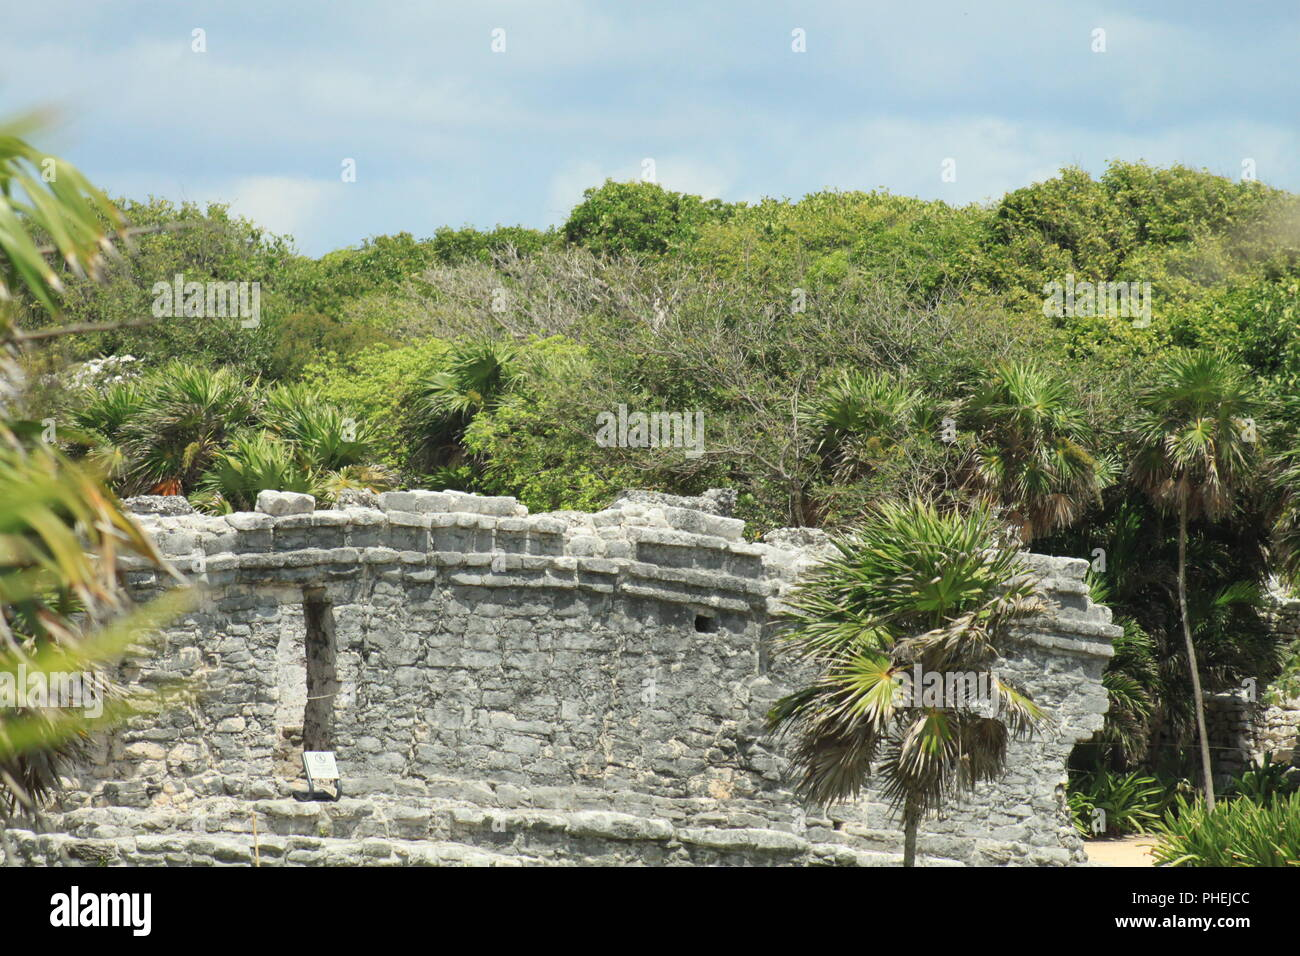 Cancún Archaeological ruins - Stock Image